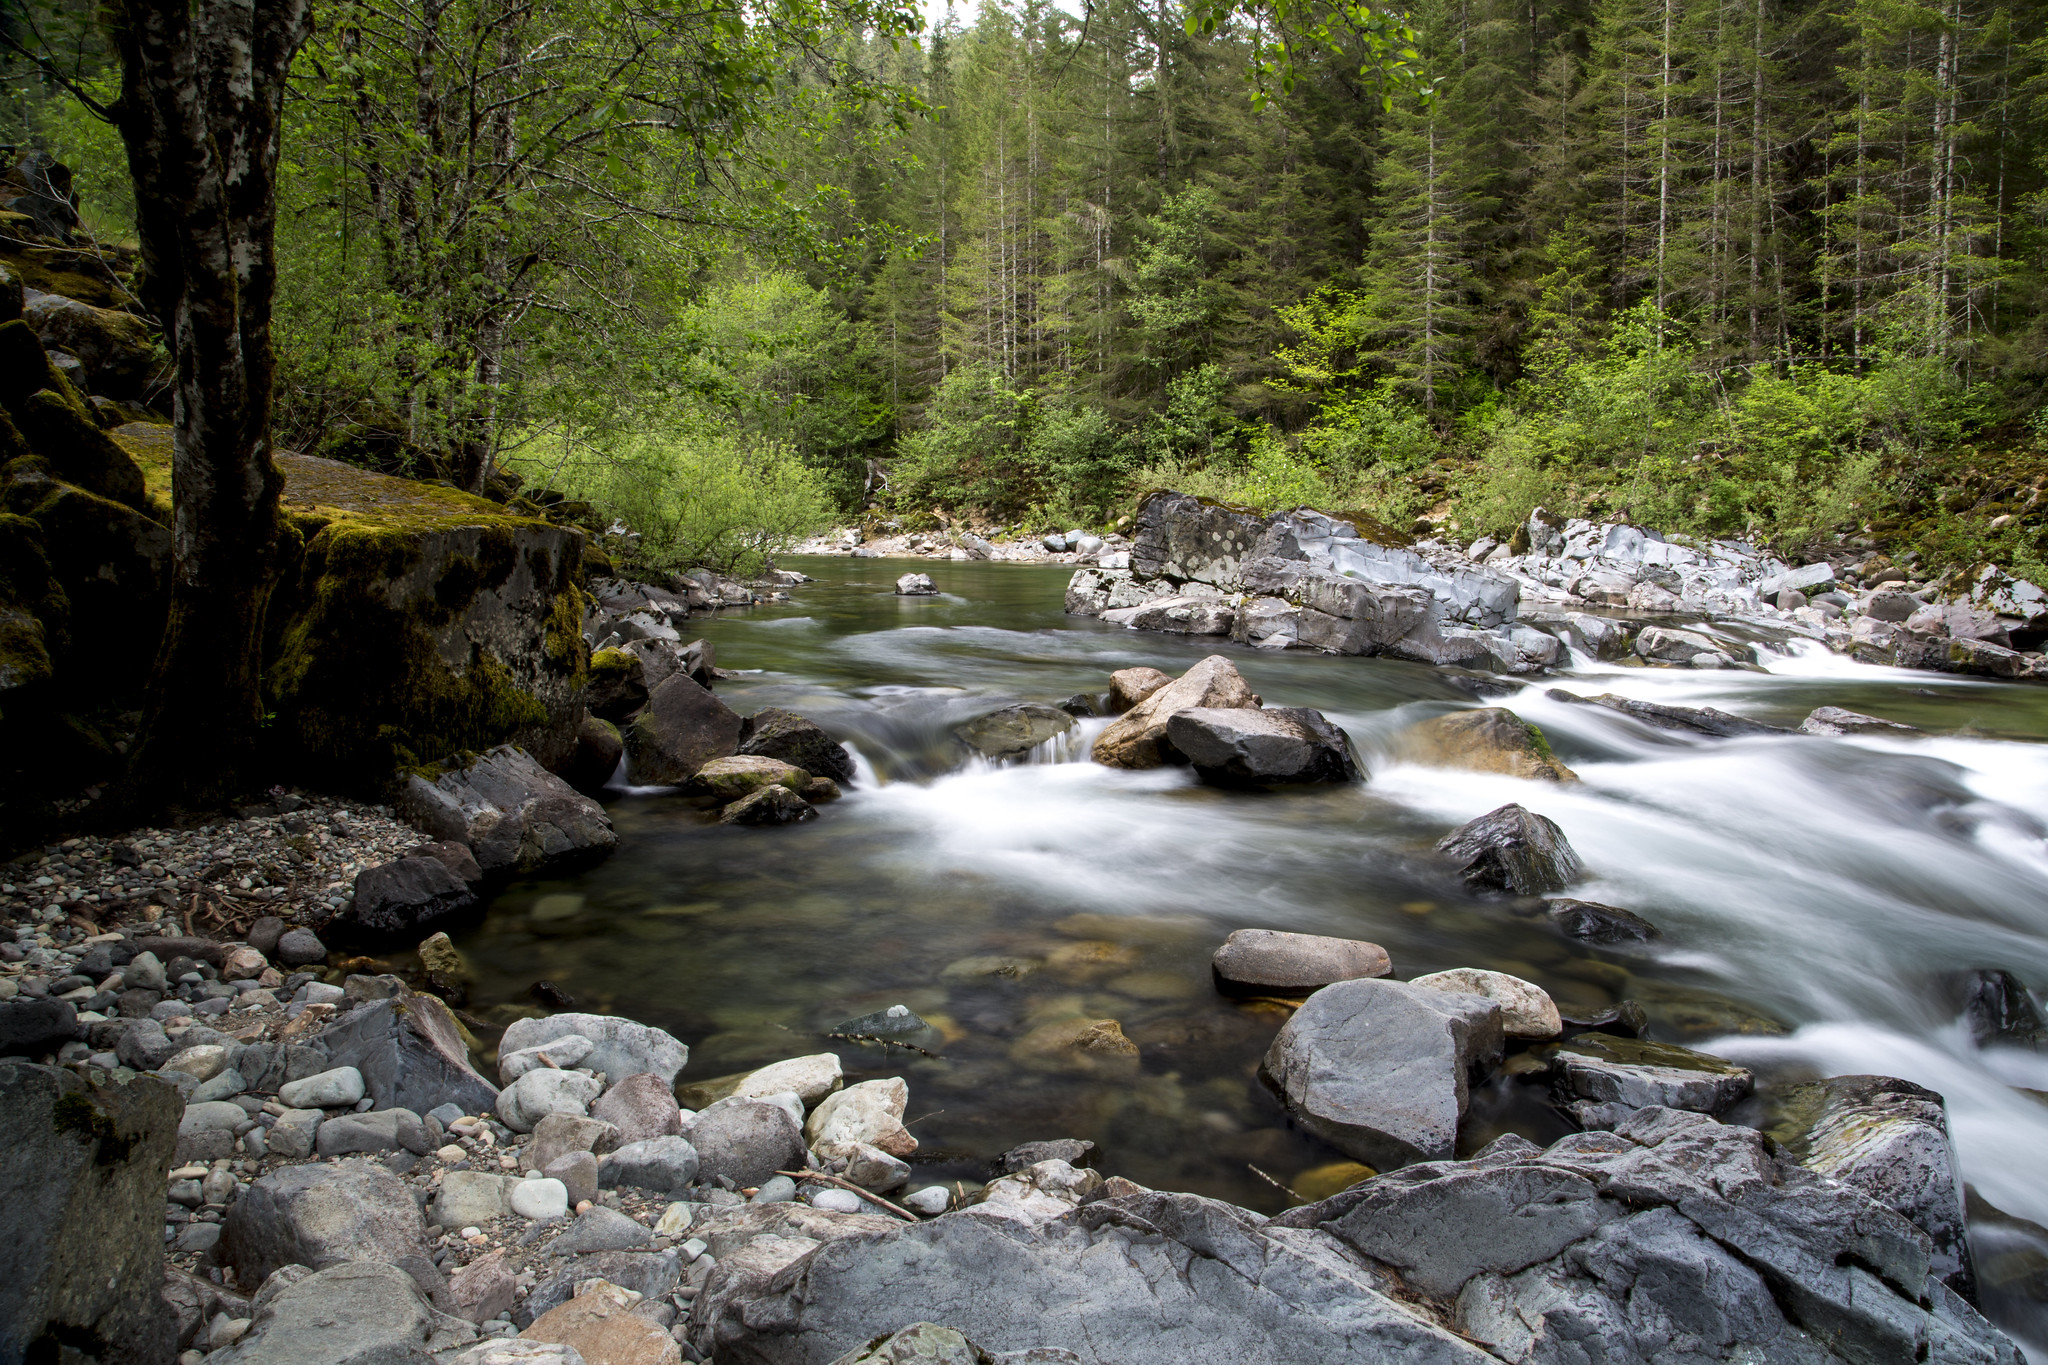 Quartzville Creek Wild And Scenic River Photo By The Bureau of Land Management via Flickr CC2